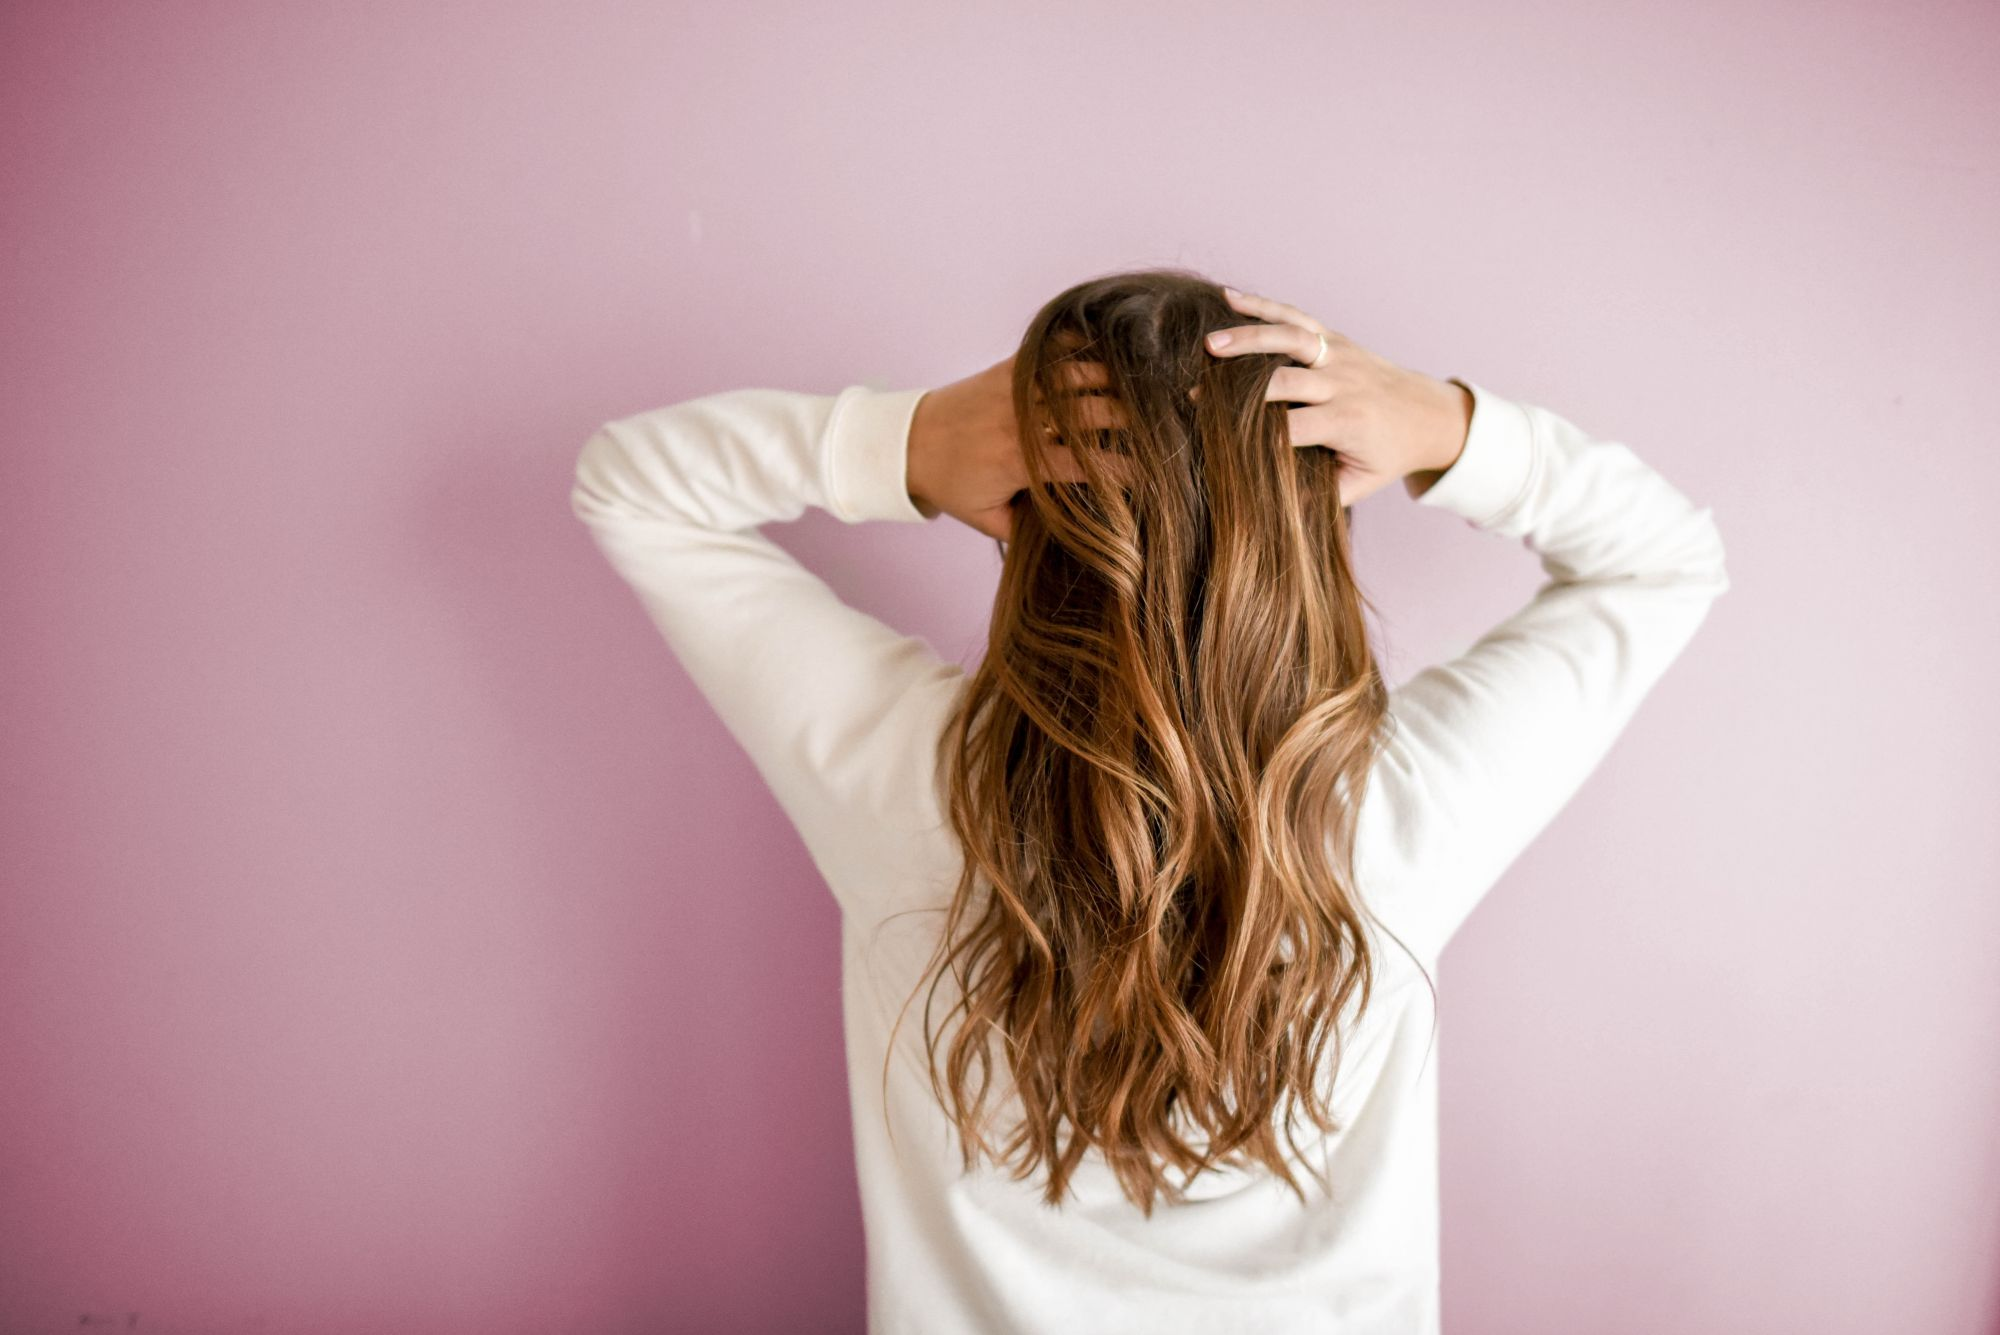 4 Easy DIY Hairstyles To Try Out This Summer: Curved Blowdry, 60s Wave